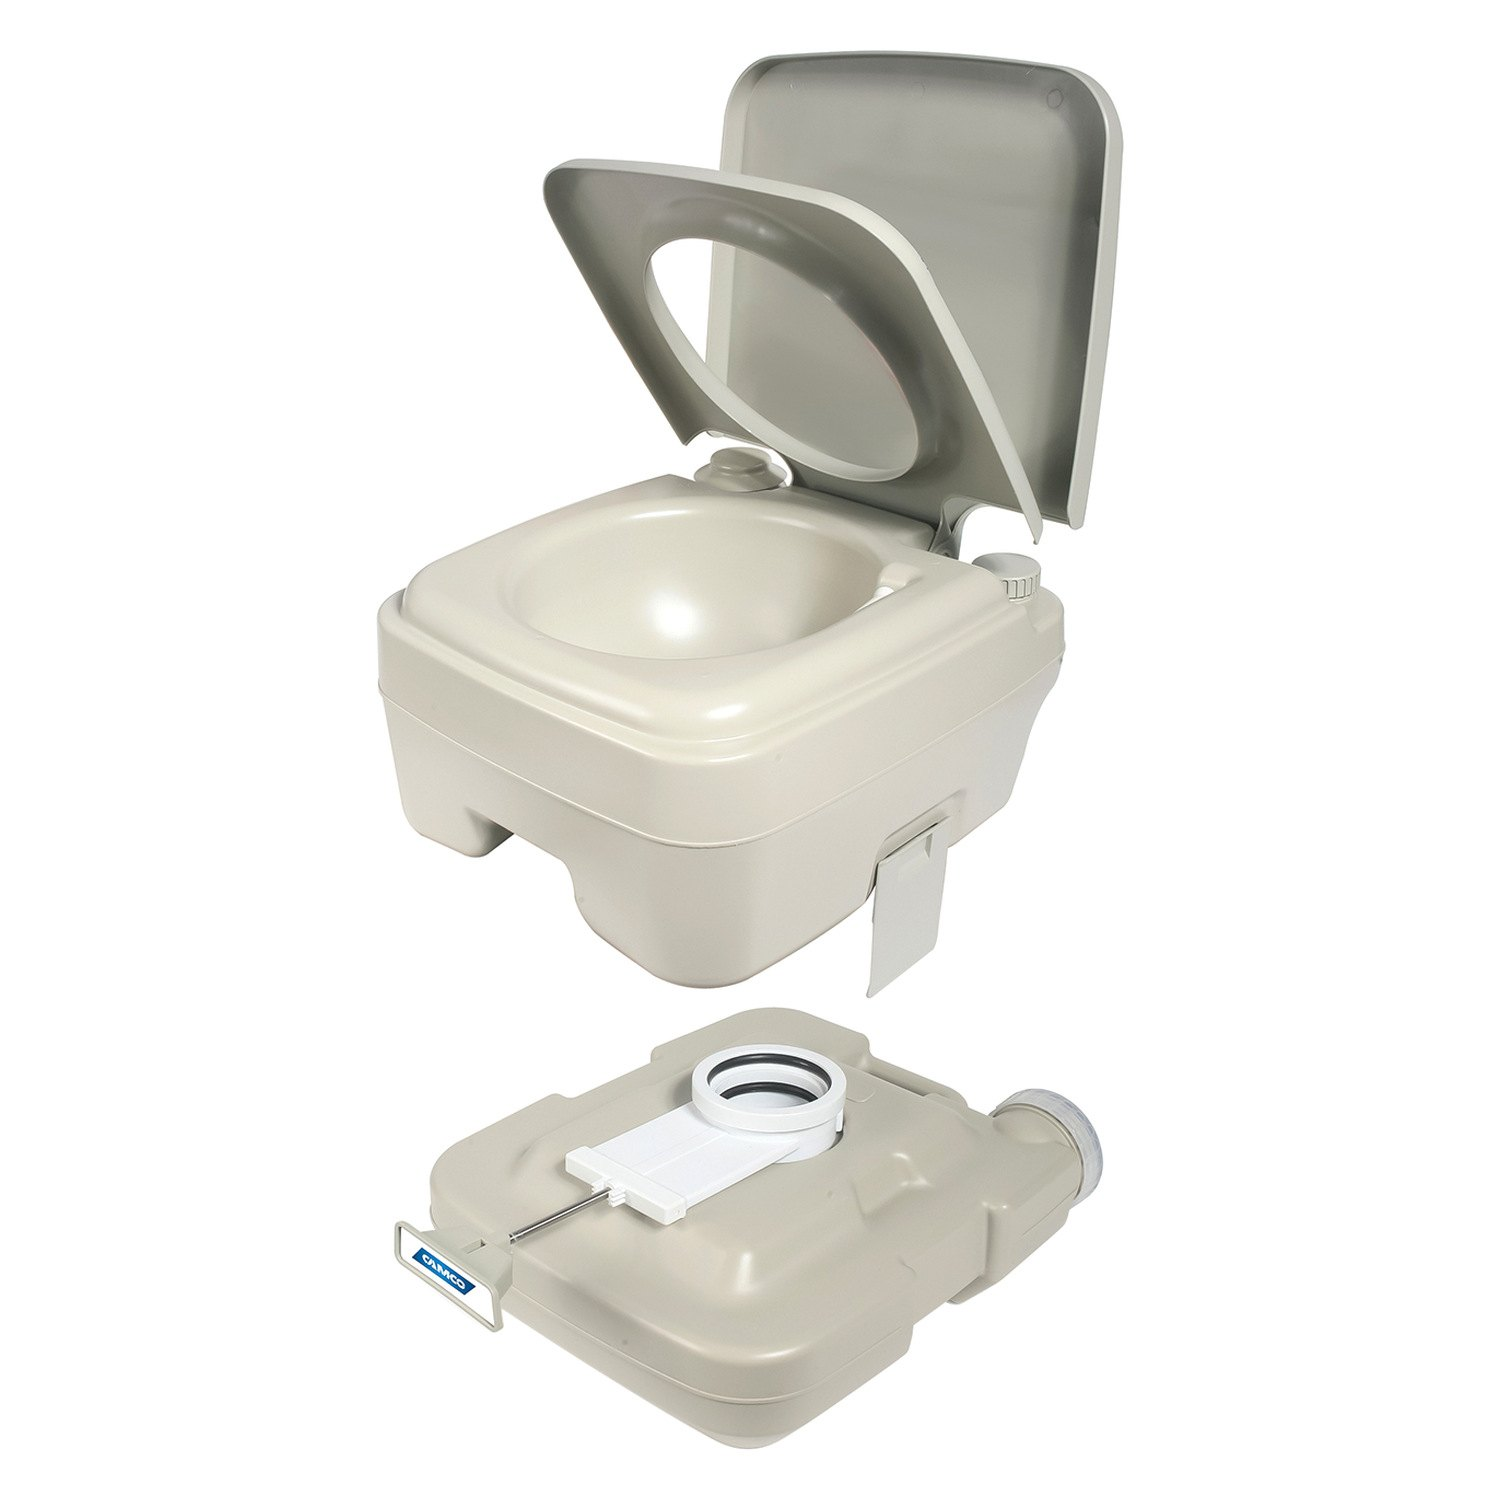 camco 2 6 gallon portable travel toilet designed for camping rv boating and other recreational activities walmart com